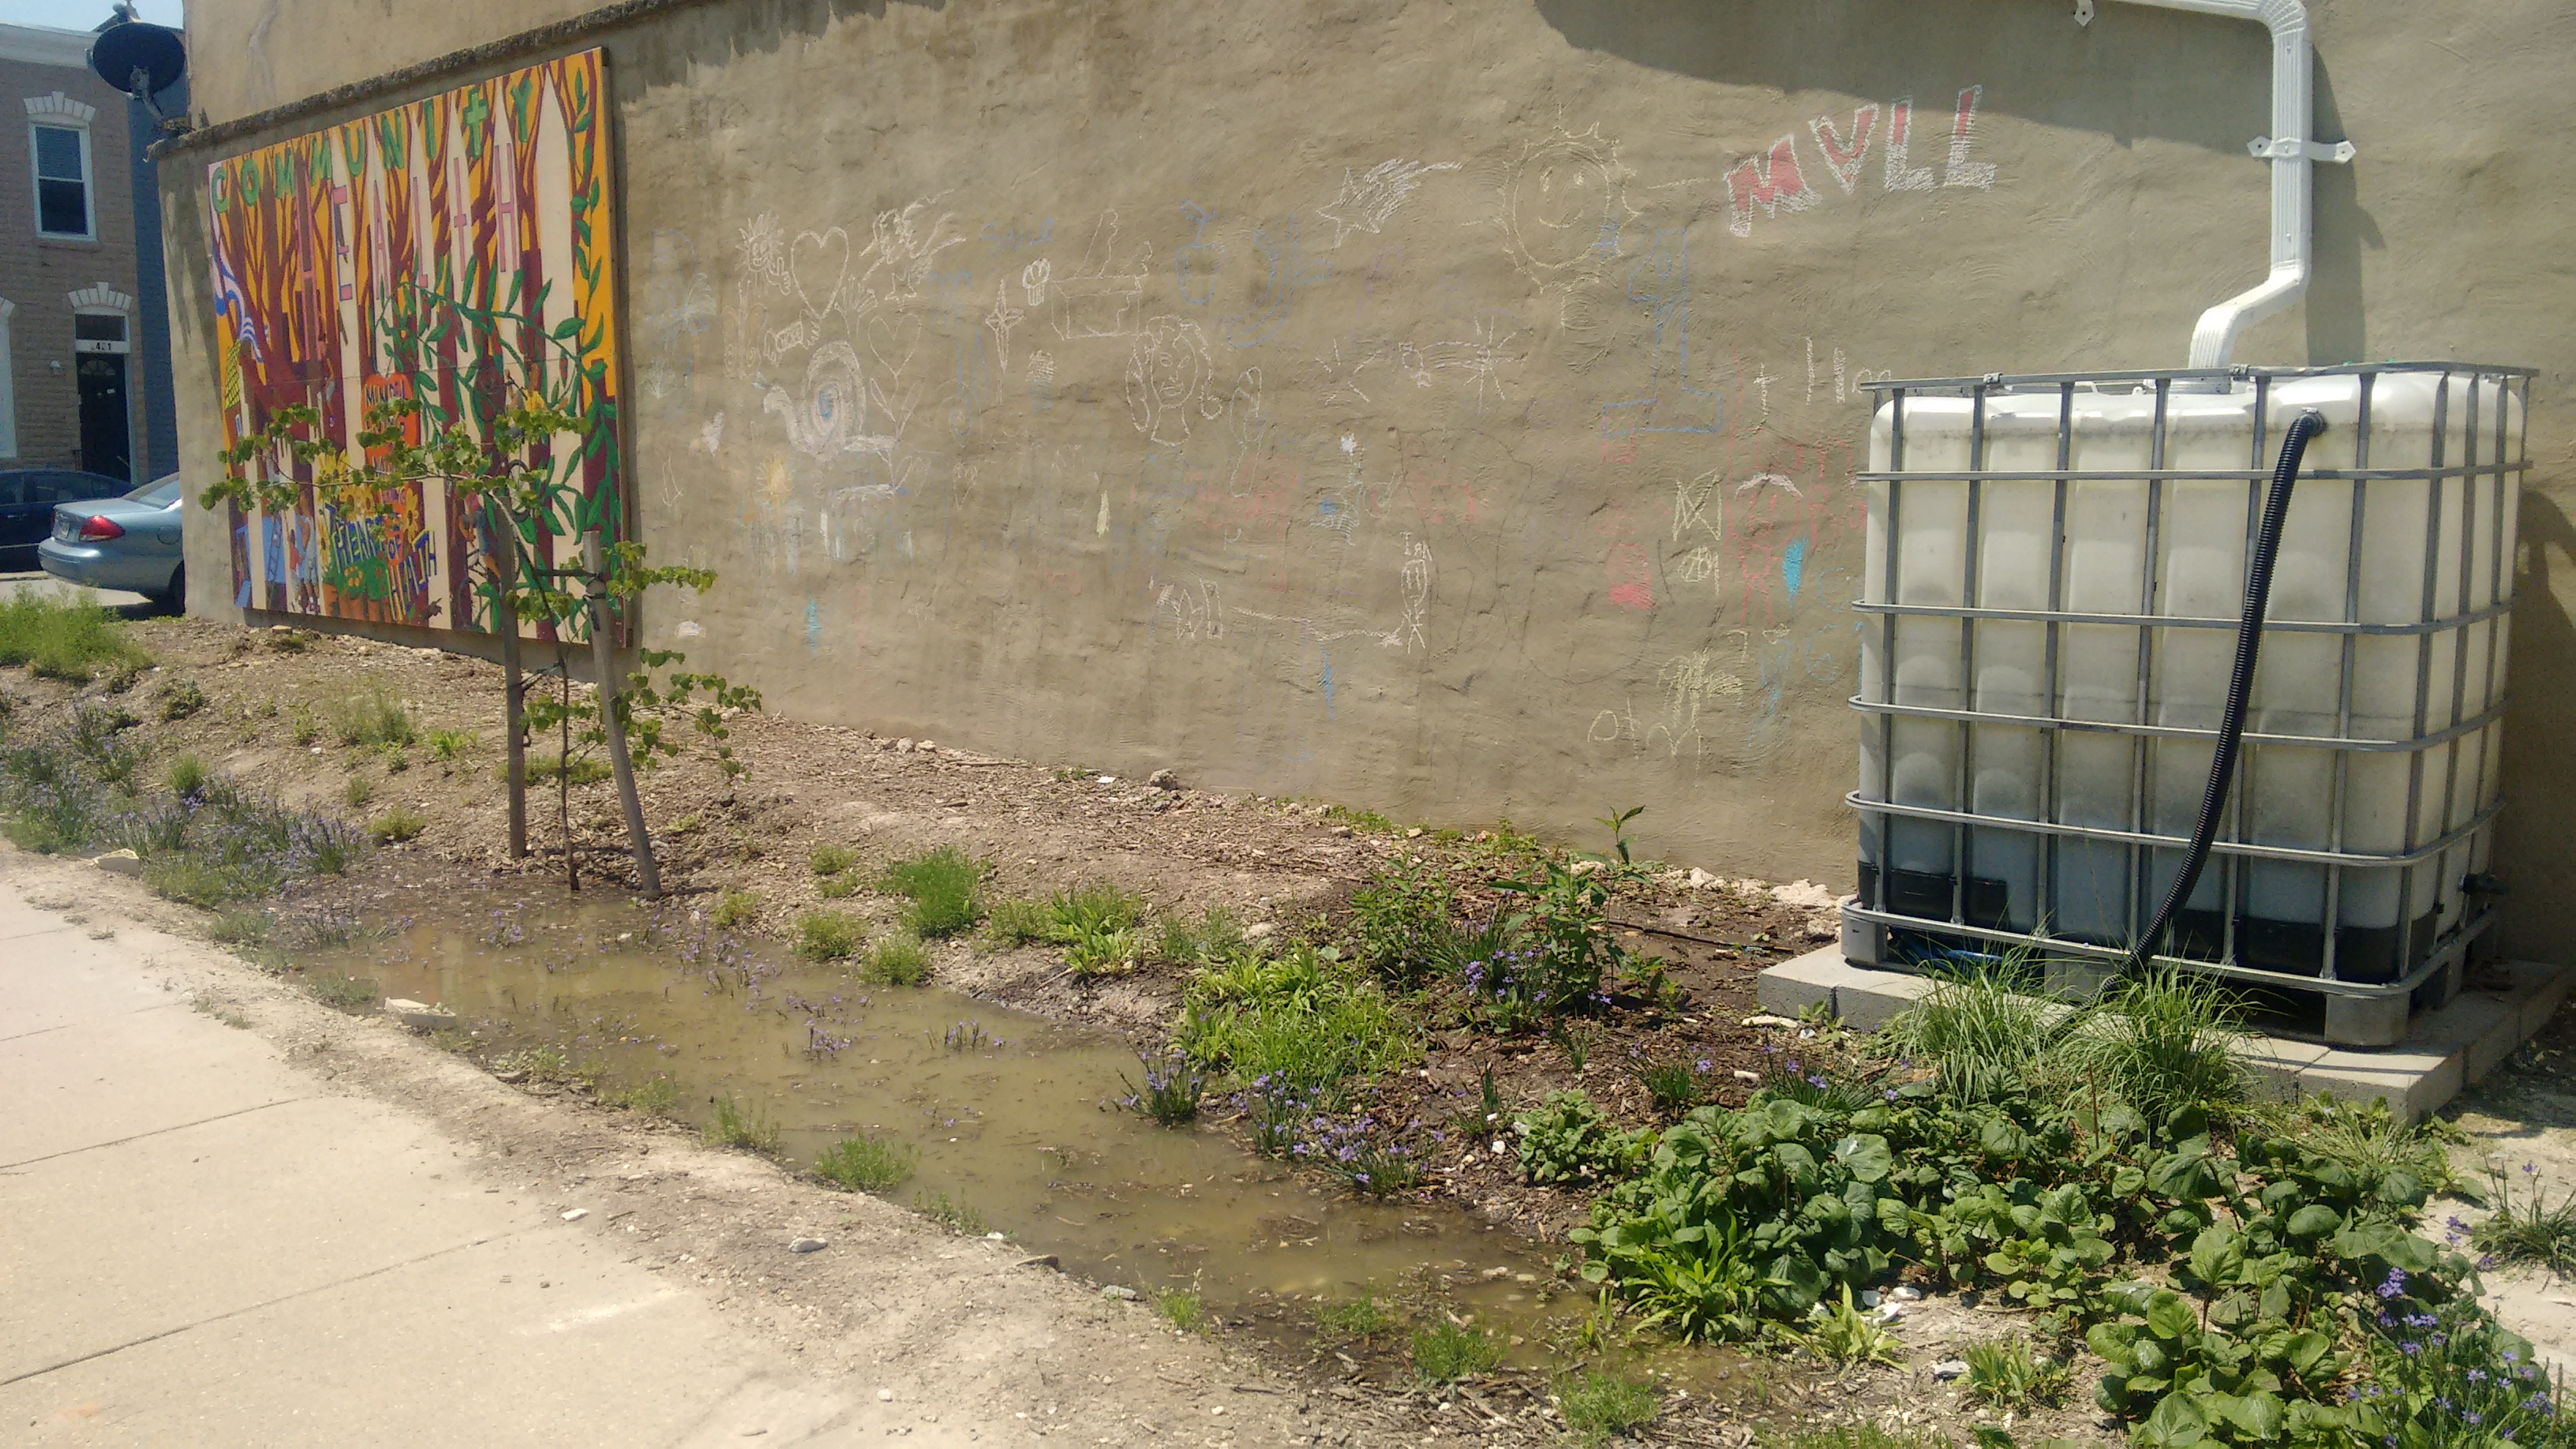 Baltimore's stormwater remediation fee could be funding green stormwater restoration projects like this rain garden in McElderry Park. Photo by Jennifer Kunze.